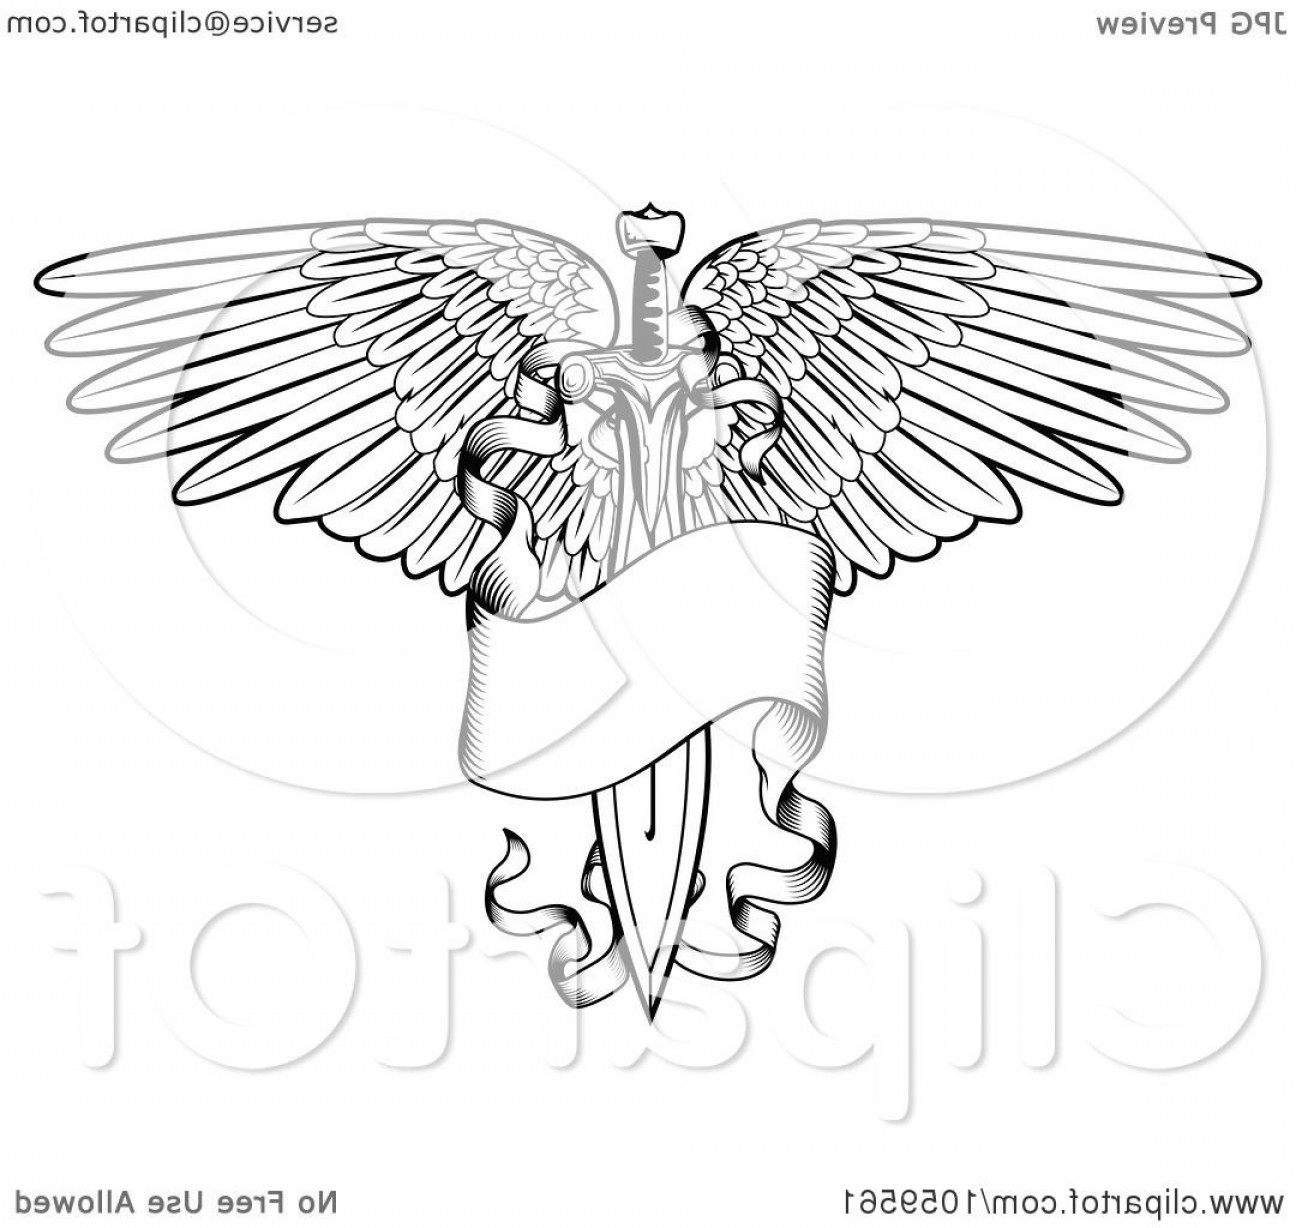 1296x1228 Black And White Winged Sword And Banner Tattoo Design Orangiausa